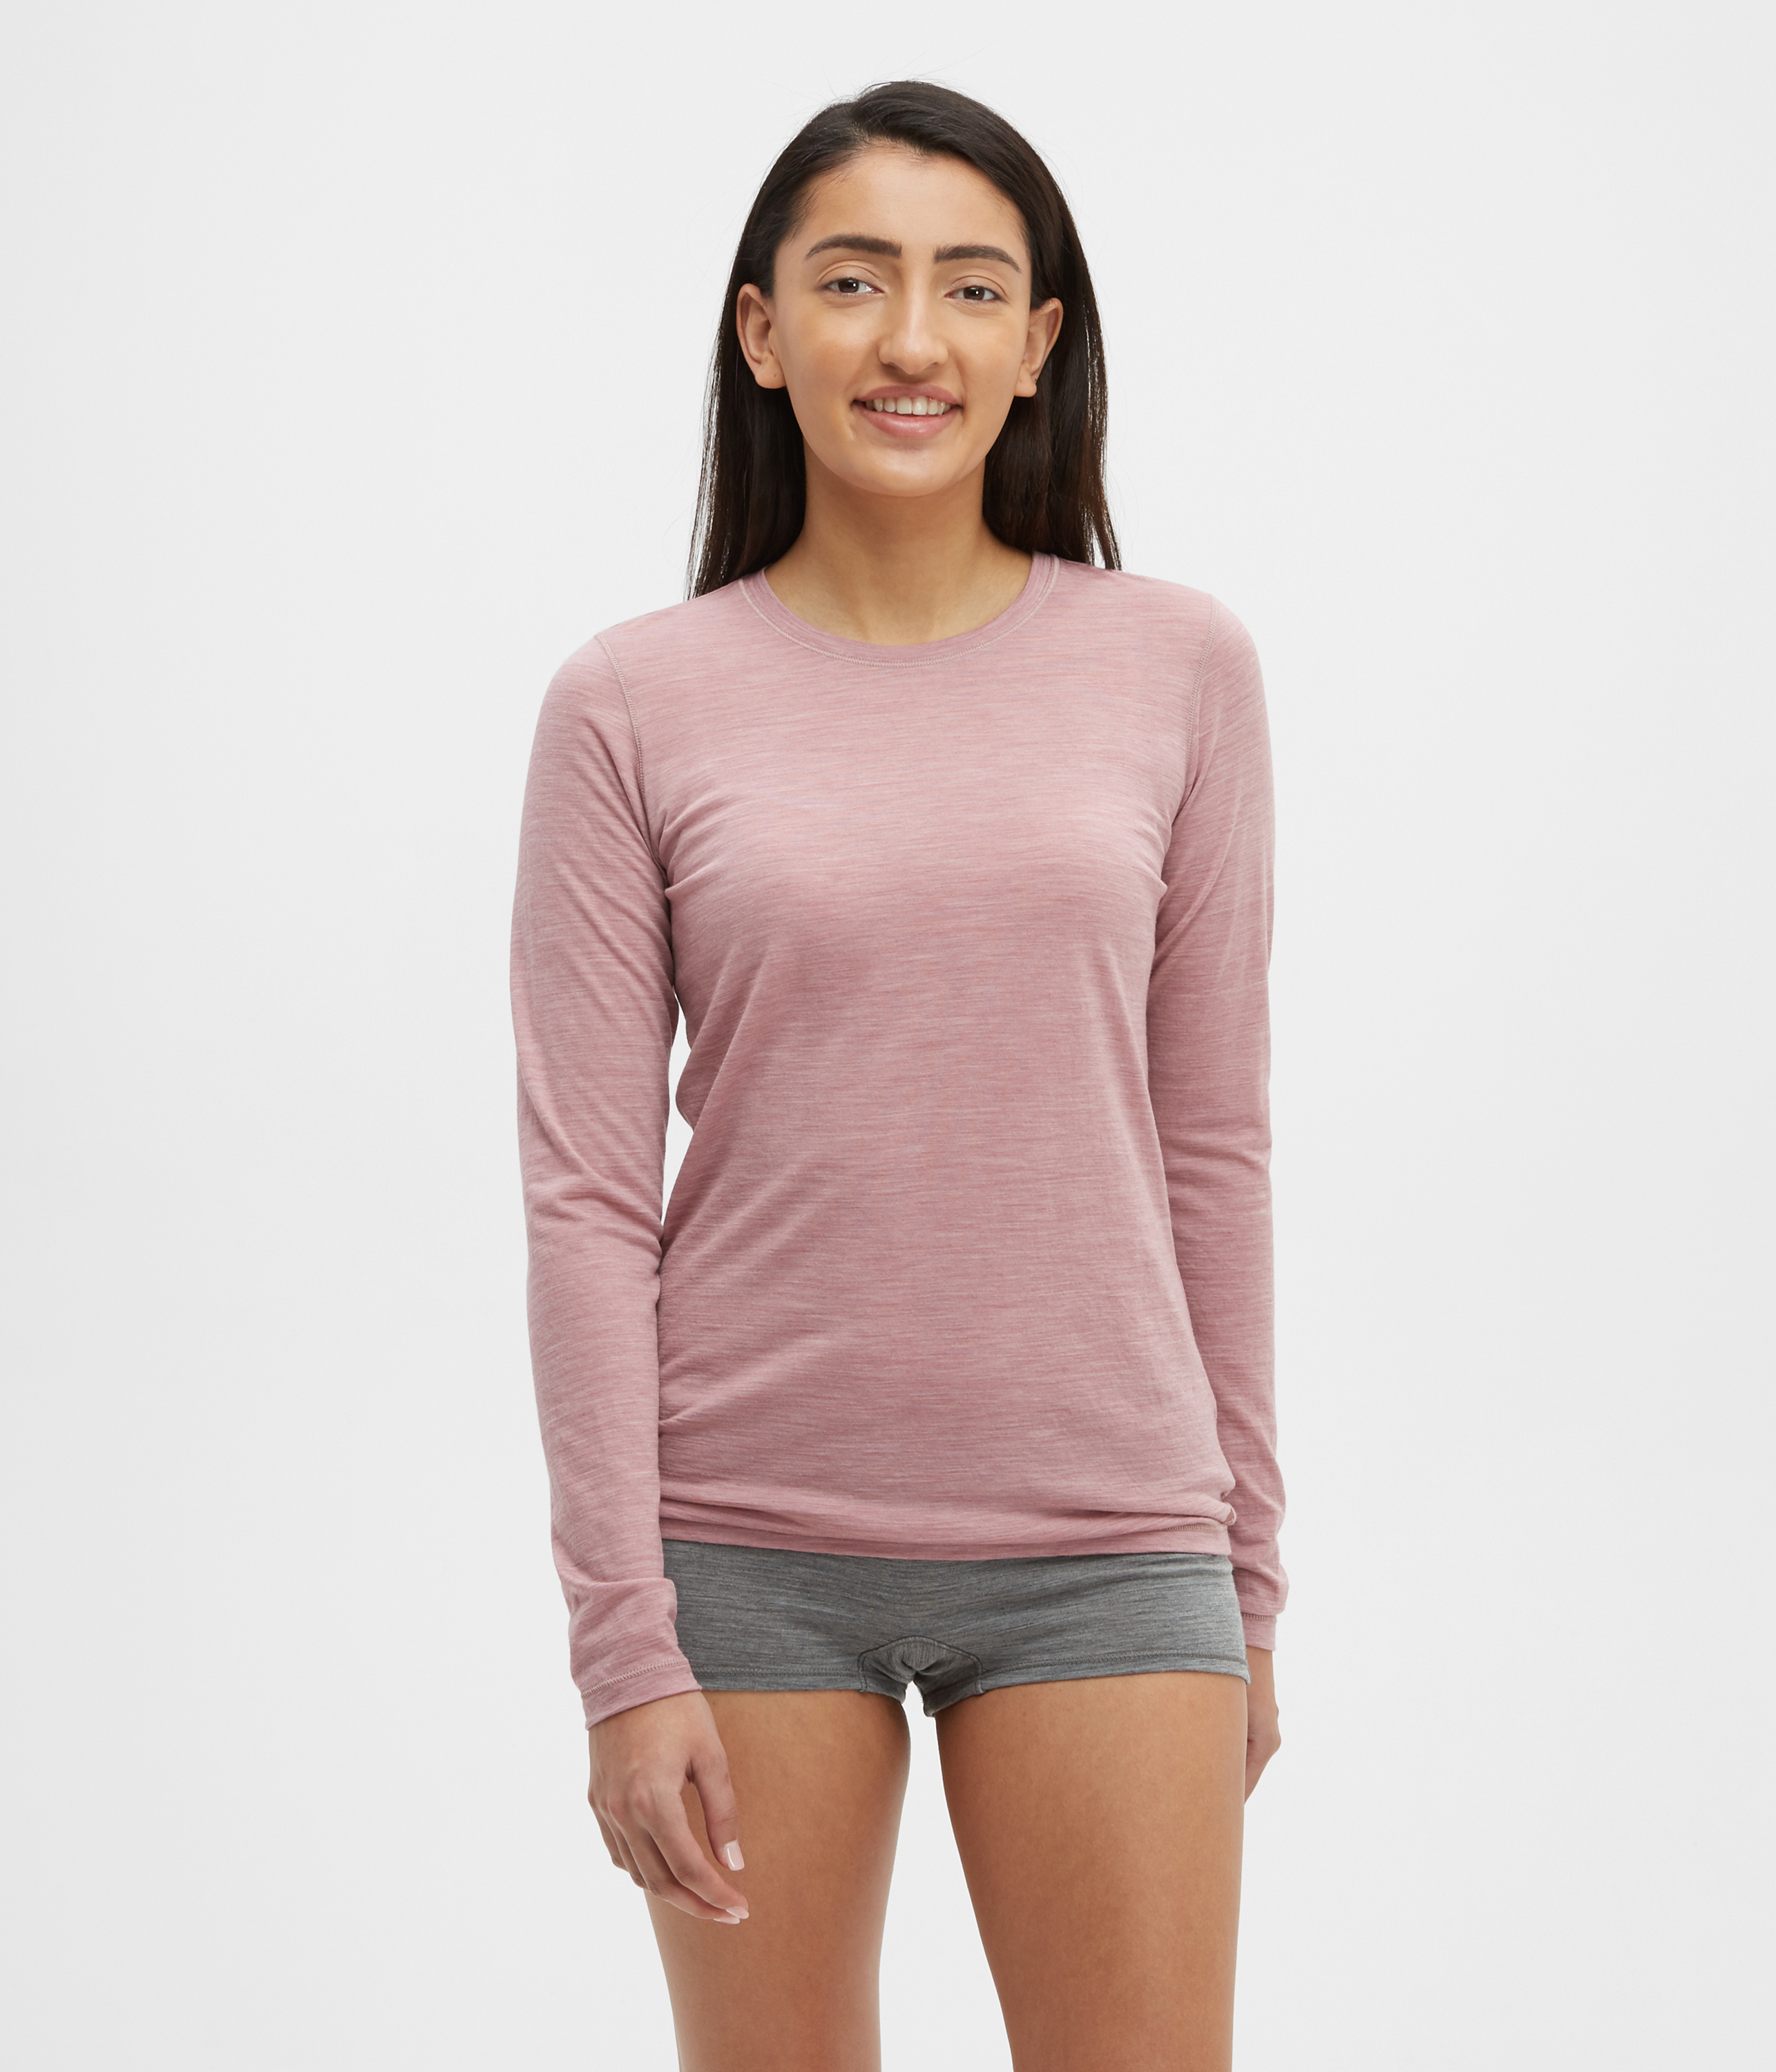 e59d2047c9 Women s Base layers and underwear